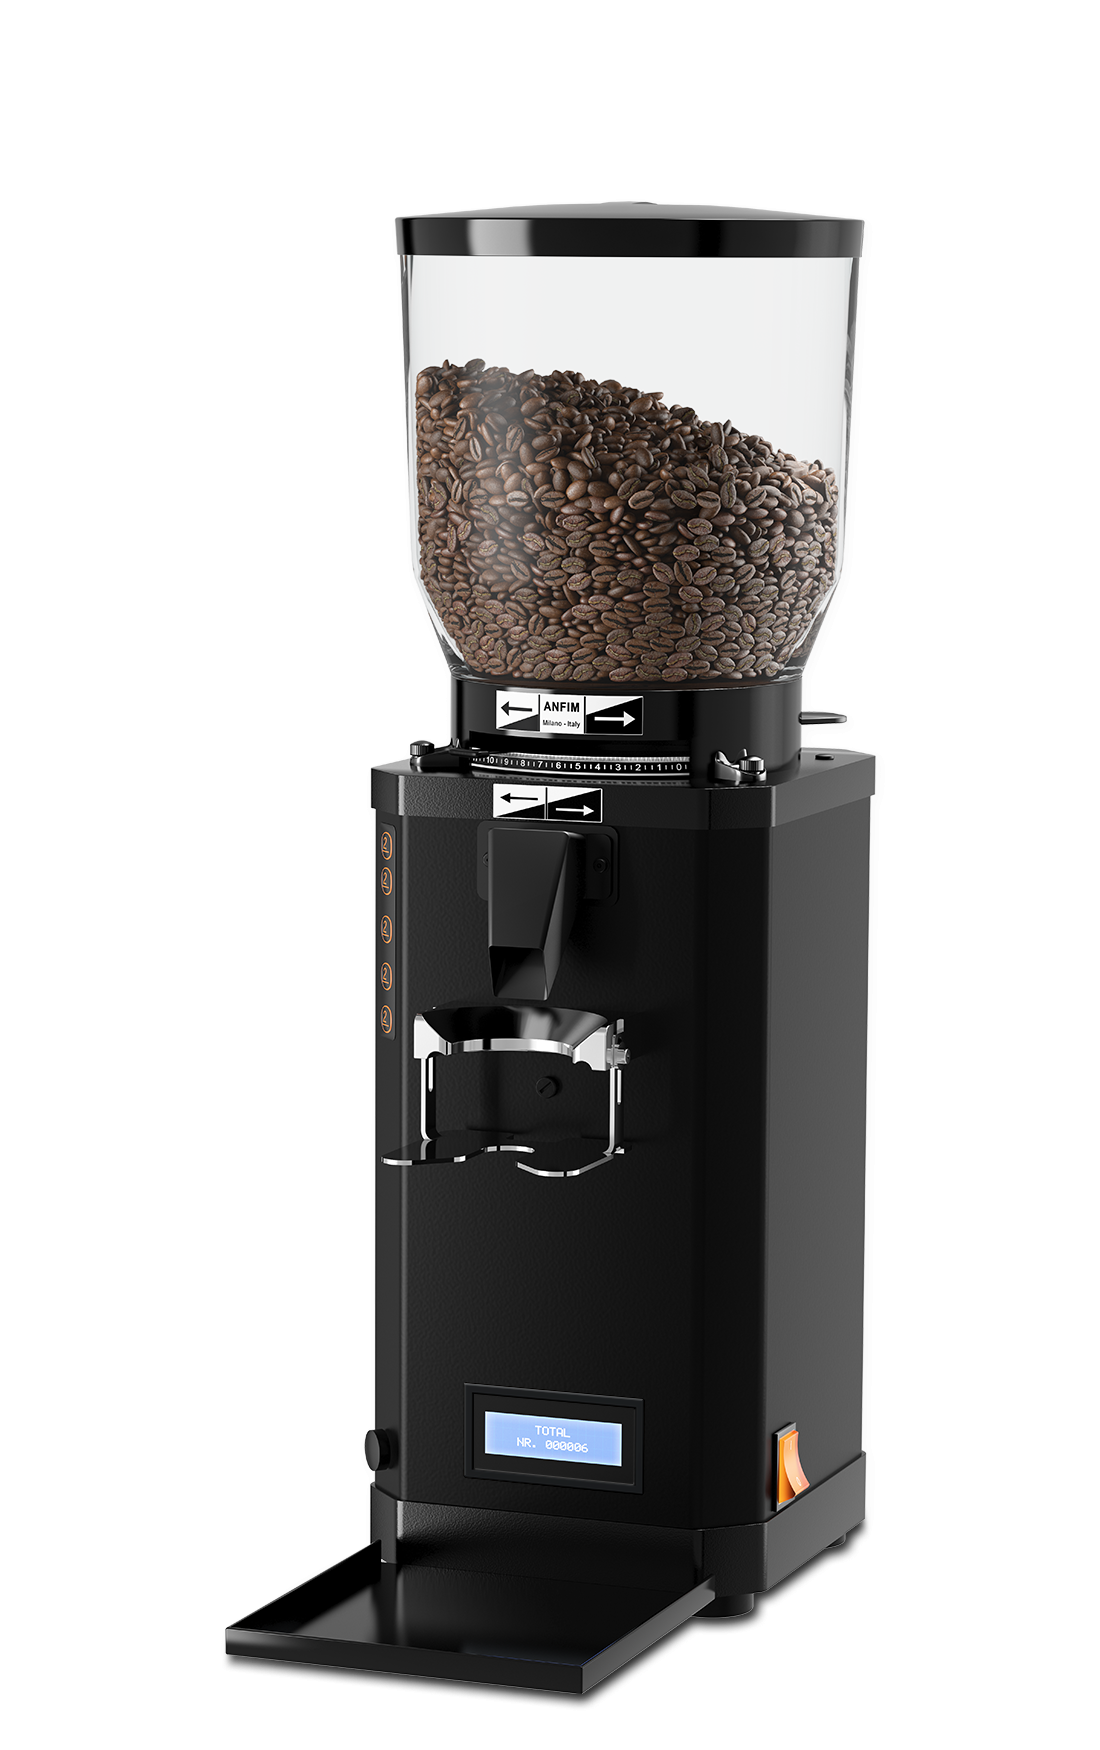 Anfim Caimano On Demand espresso grinder